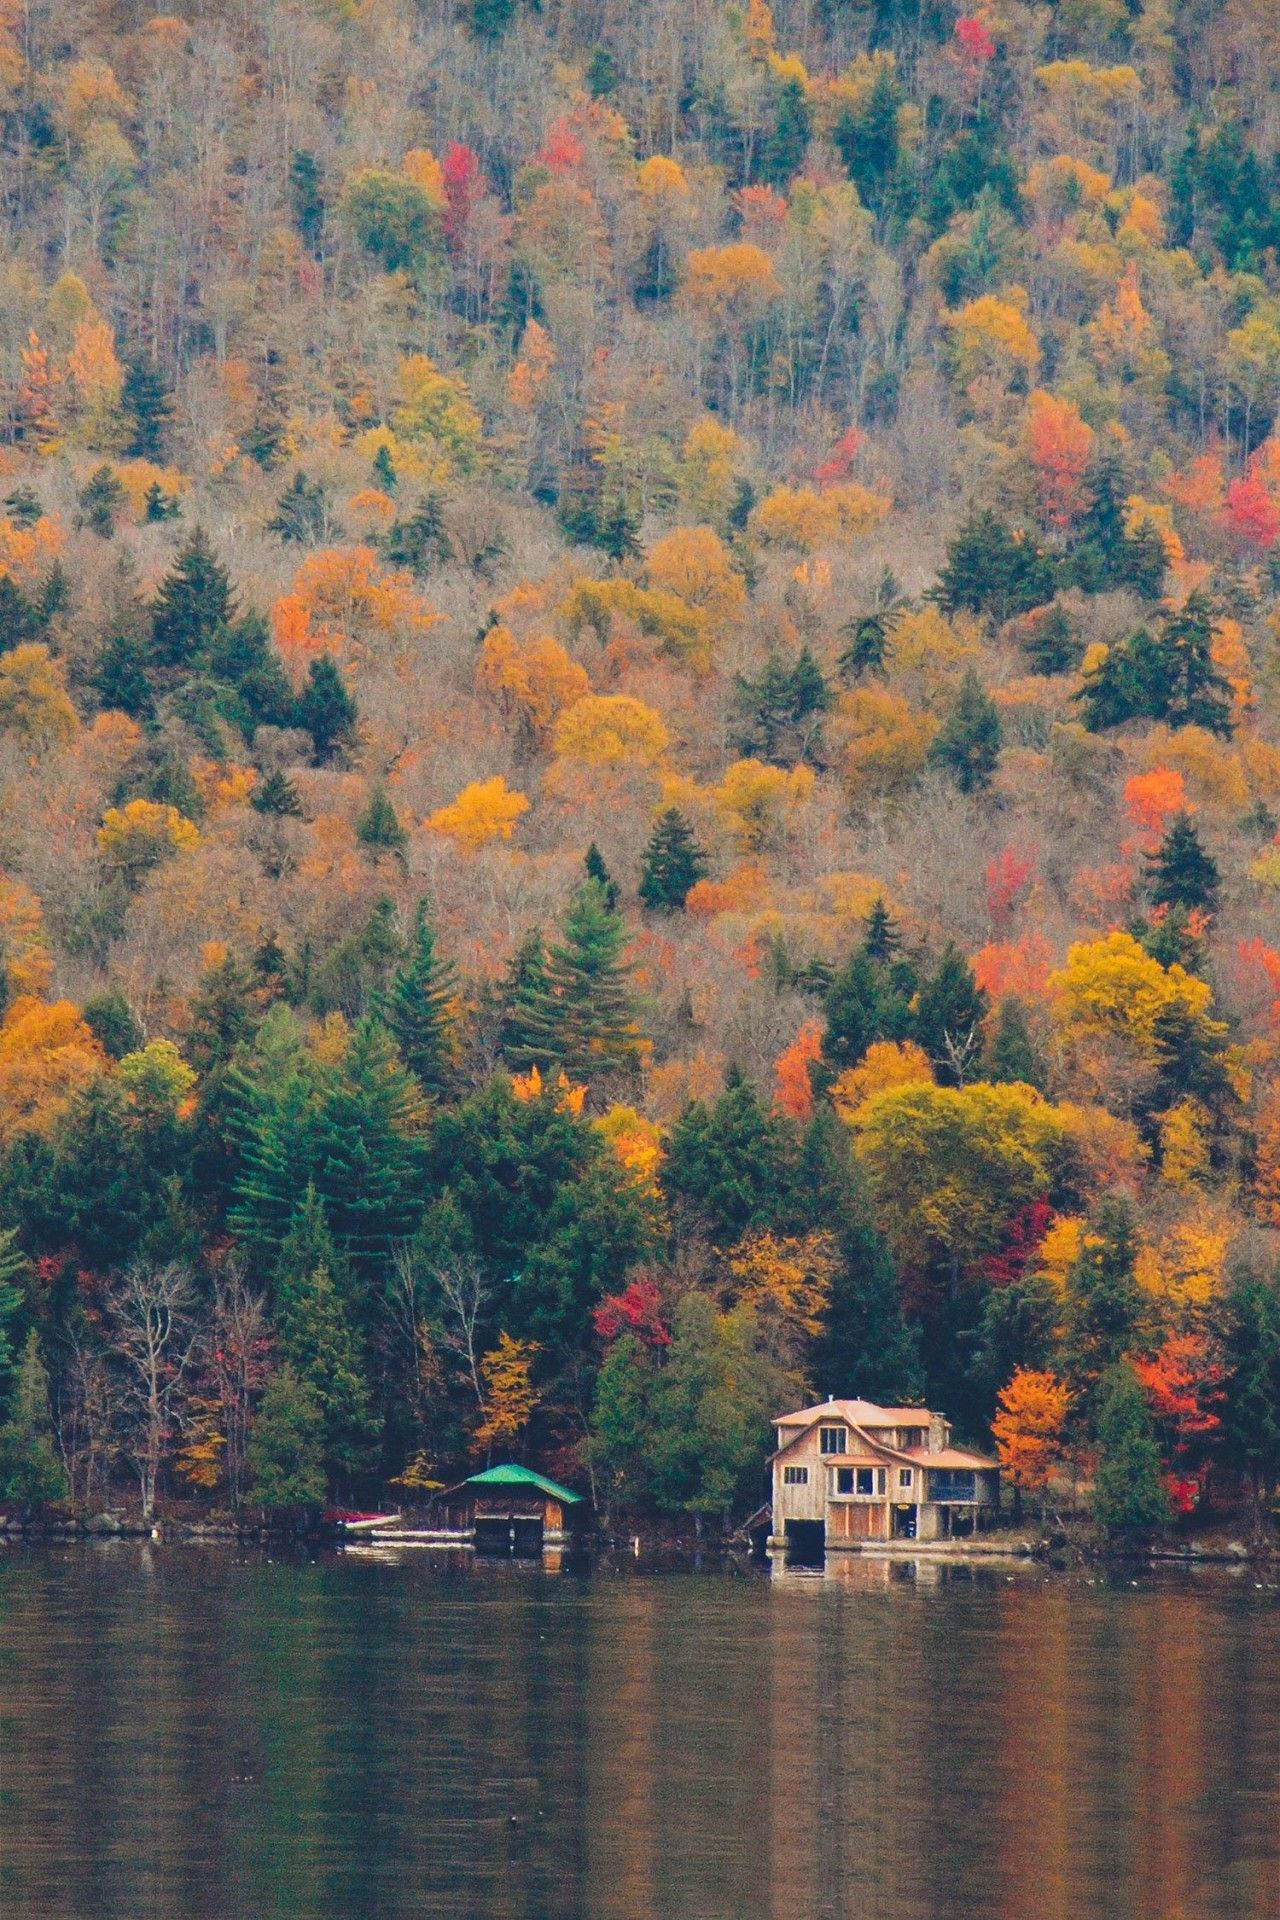 7 Of The Best Small Towns In New York State To Visit Now New York Vacation Places In New York Lake George